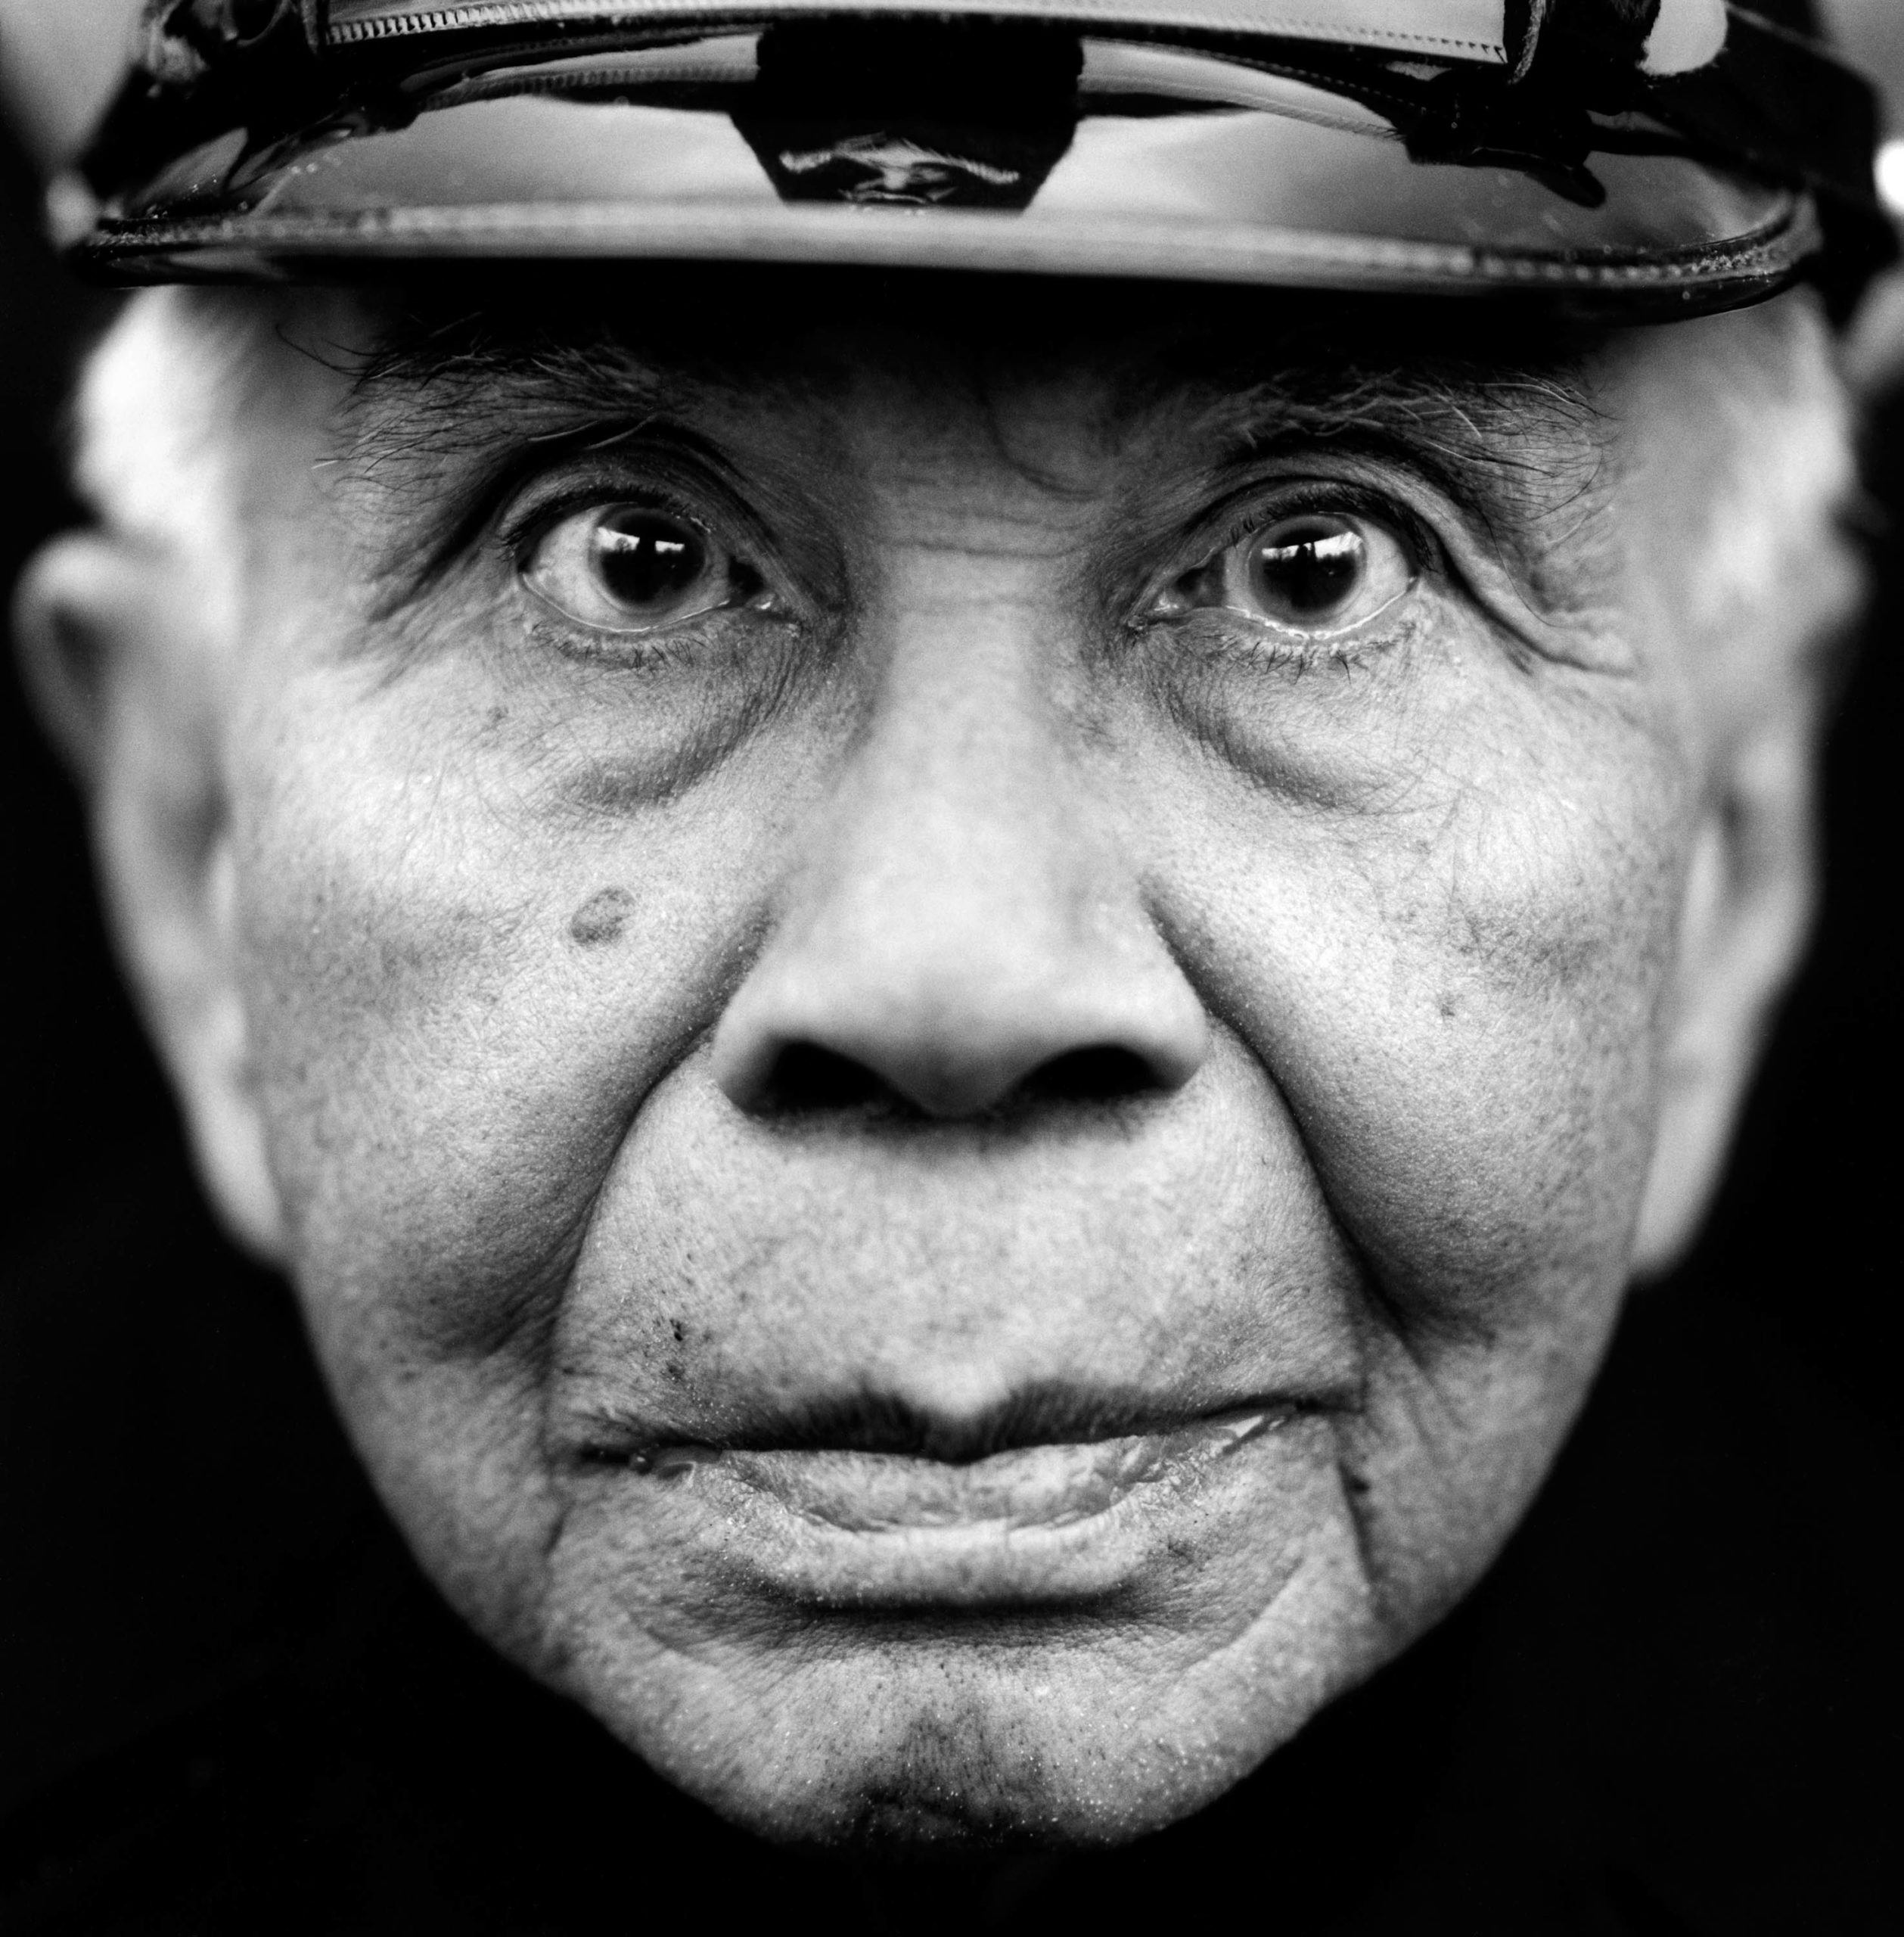 """Henk Paulus (Dutch East Indies, 1917) . Interview outtake: """"There was a Japanese guard who took pleasure in thrashing people up. He would beat the living daylights out of you. And afterwards, he would be really kind and gave you his last cigarette."""""""